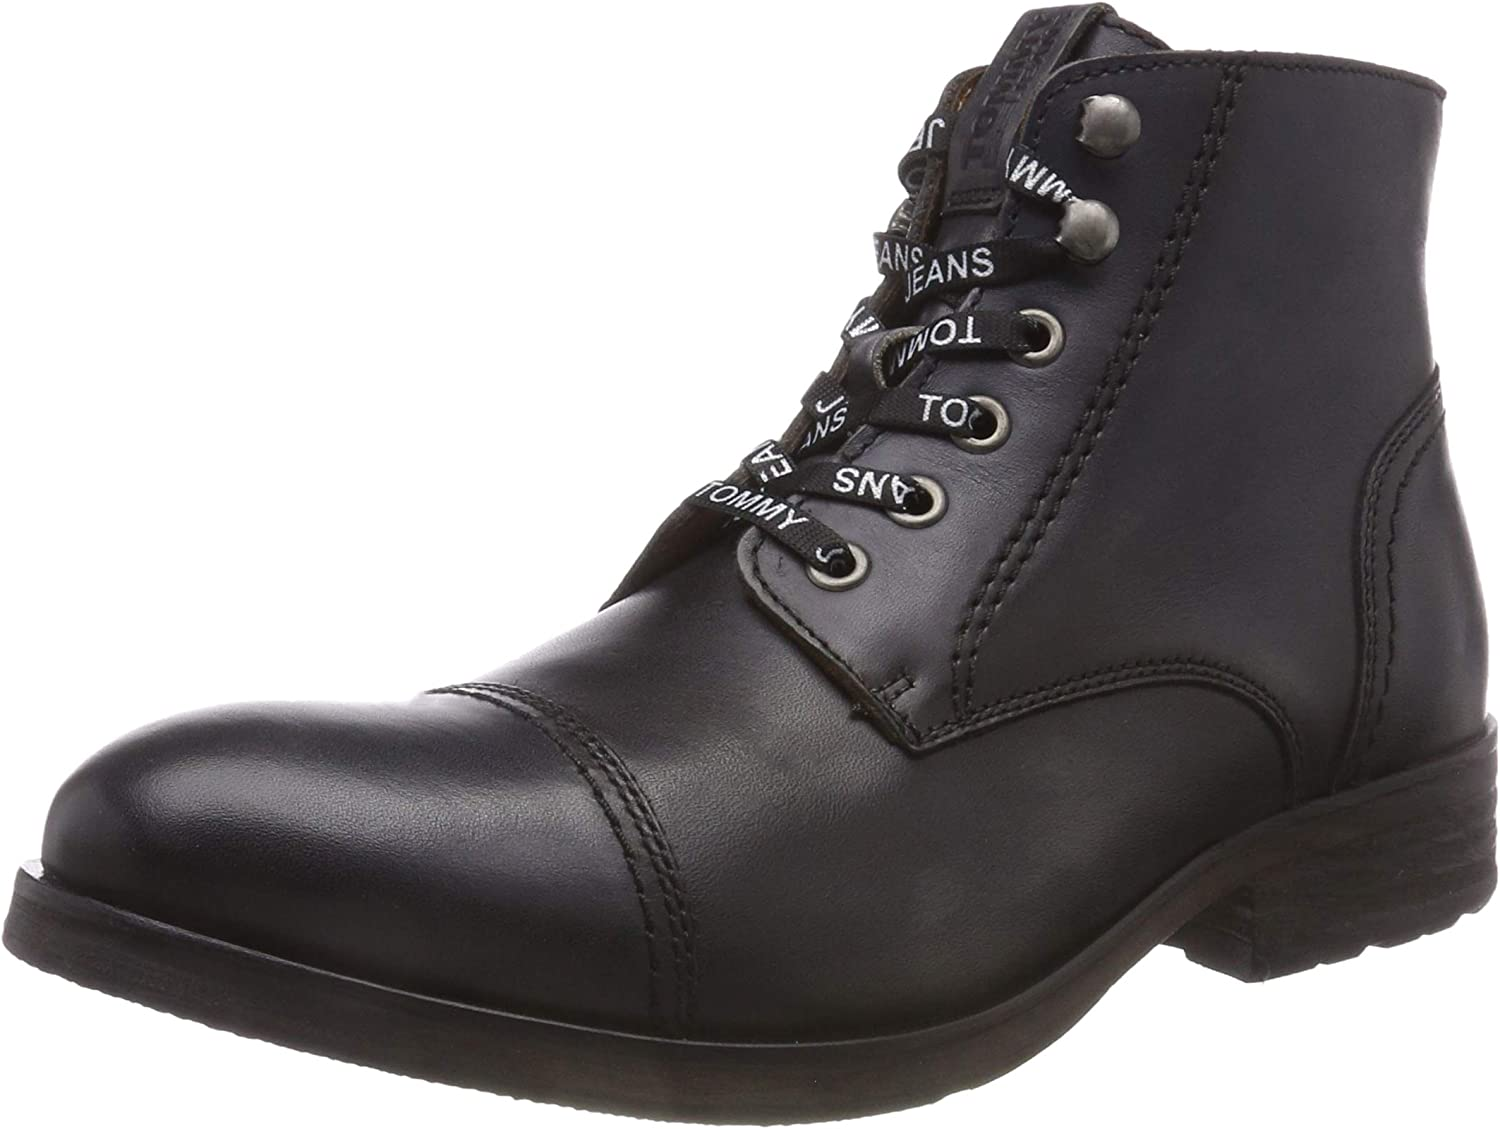 TALLA 43 EU. Tommy Jeans Dressy Leather Lace Up Boot, Botas Militar para Hombre